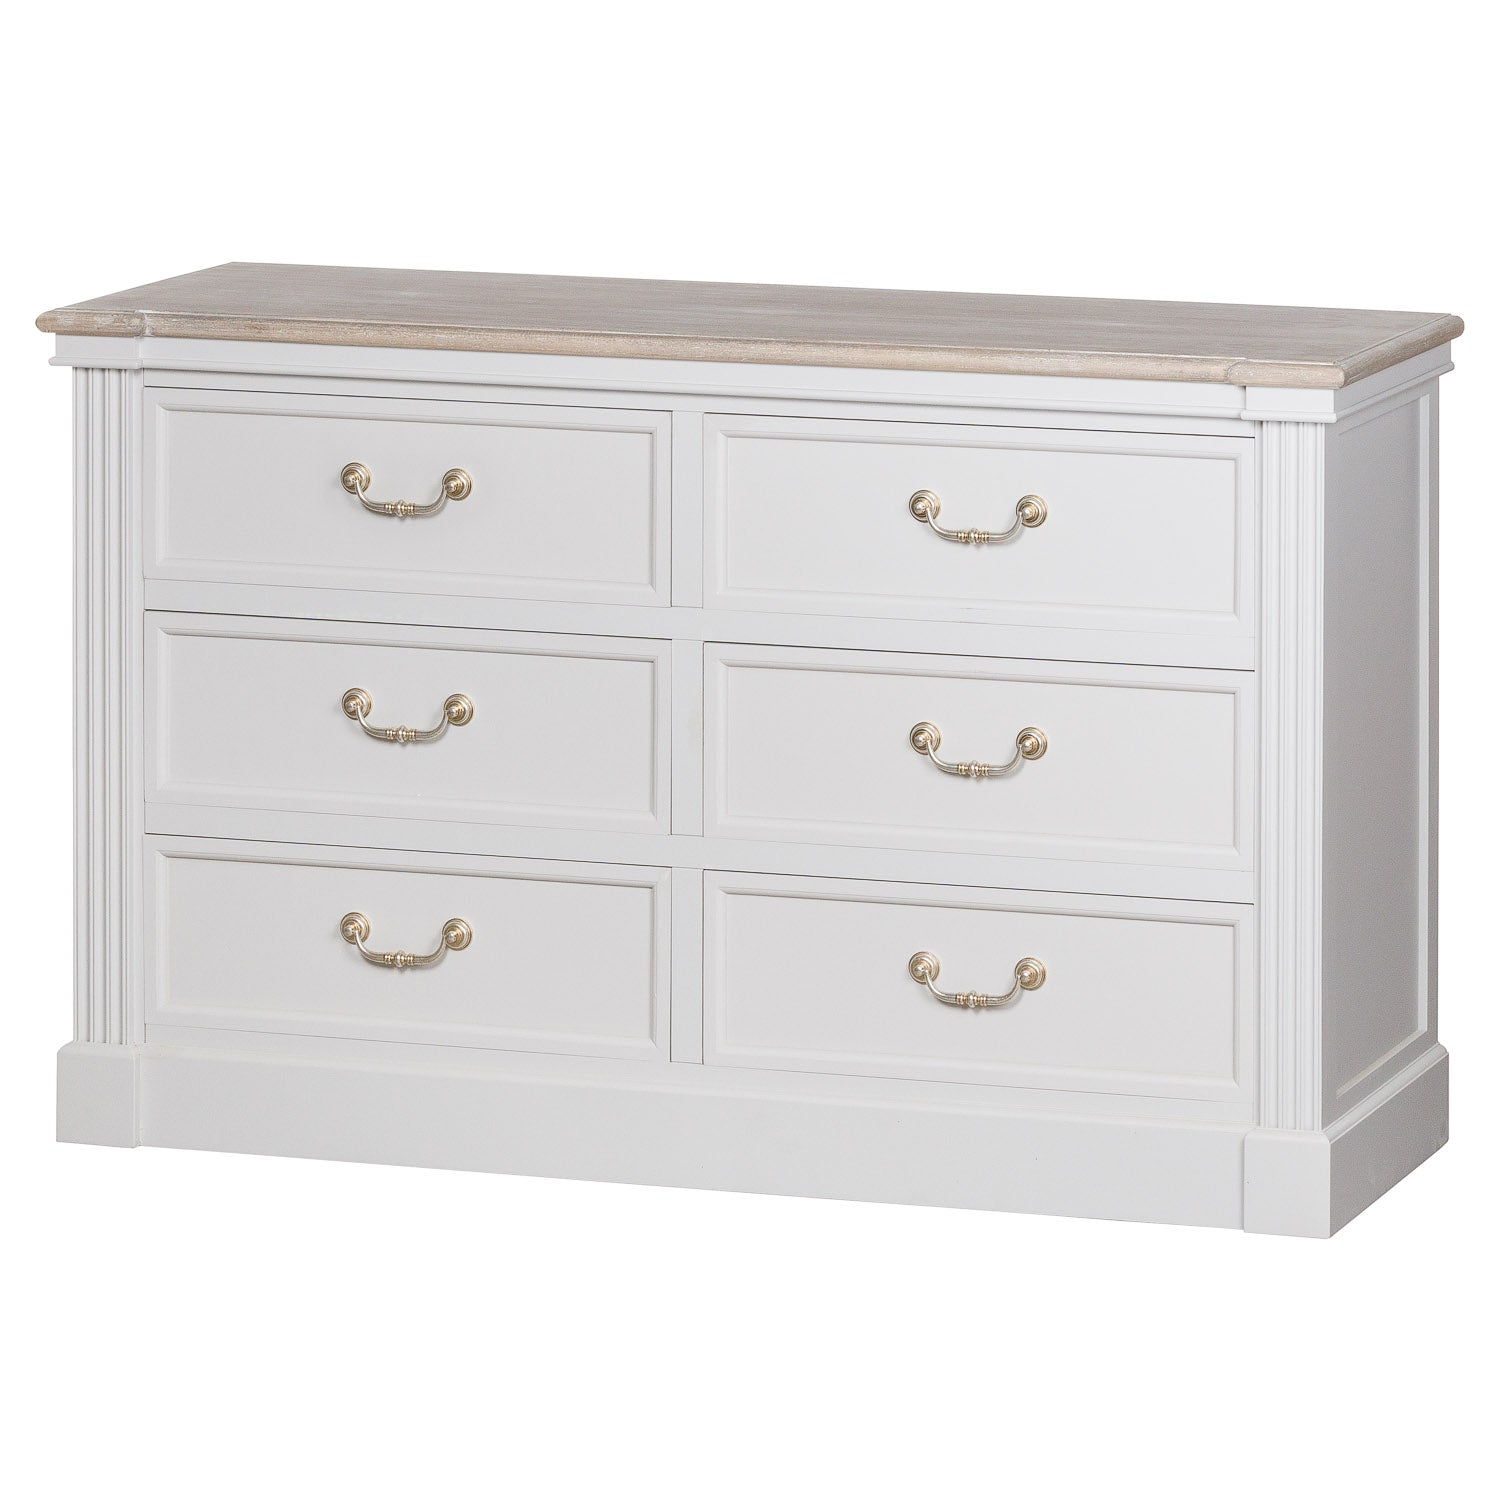 Liberty Collection 6 Drawer Chest of Drawers